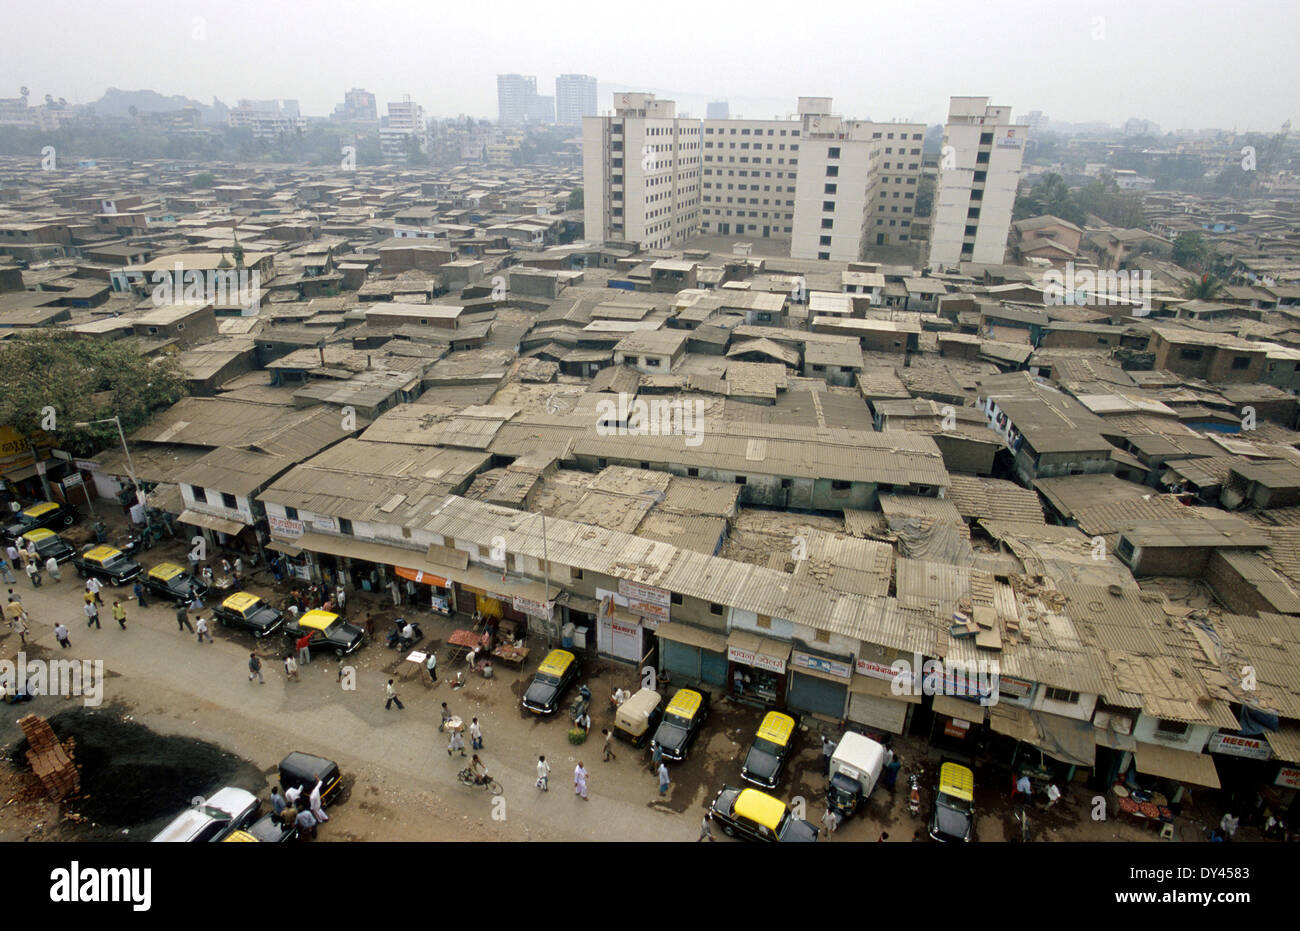 India Mumbai Slum Dharavi The Largest Slum In Asia